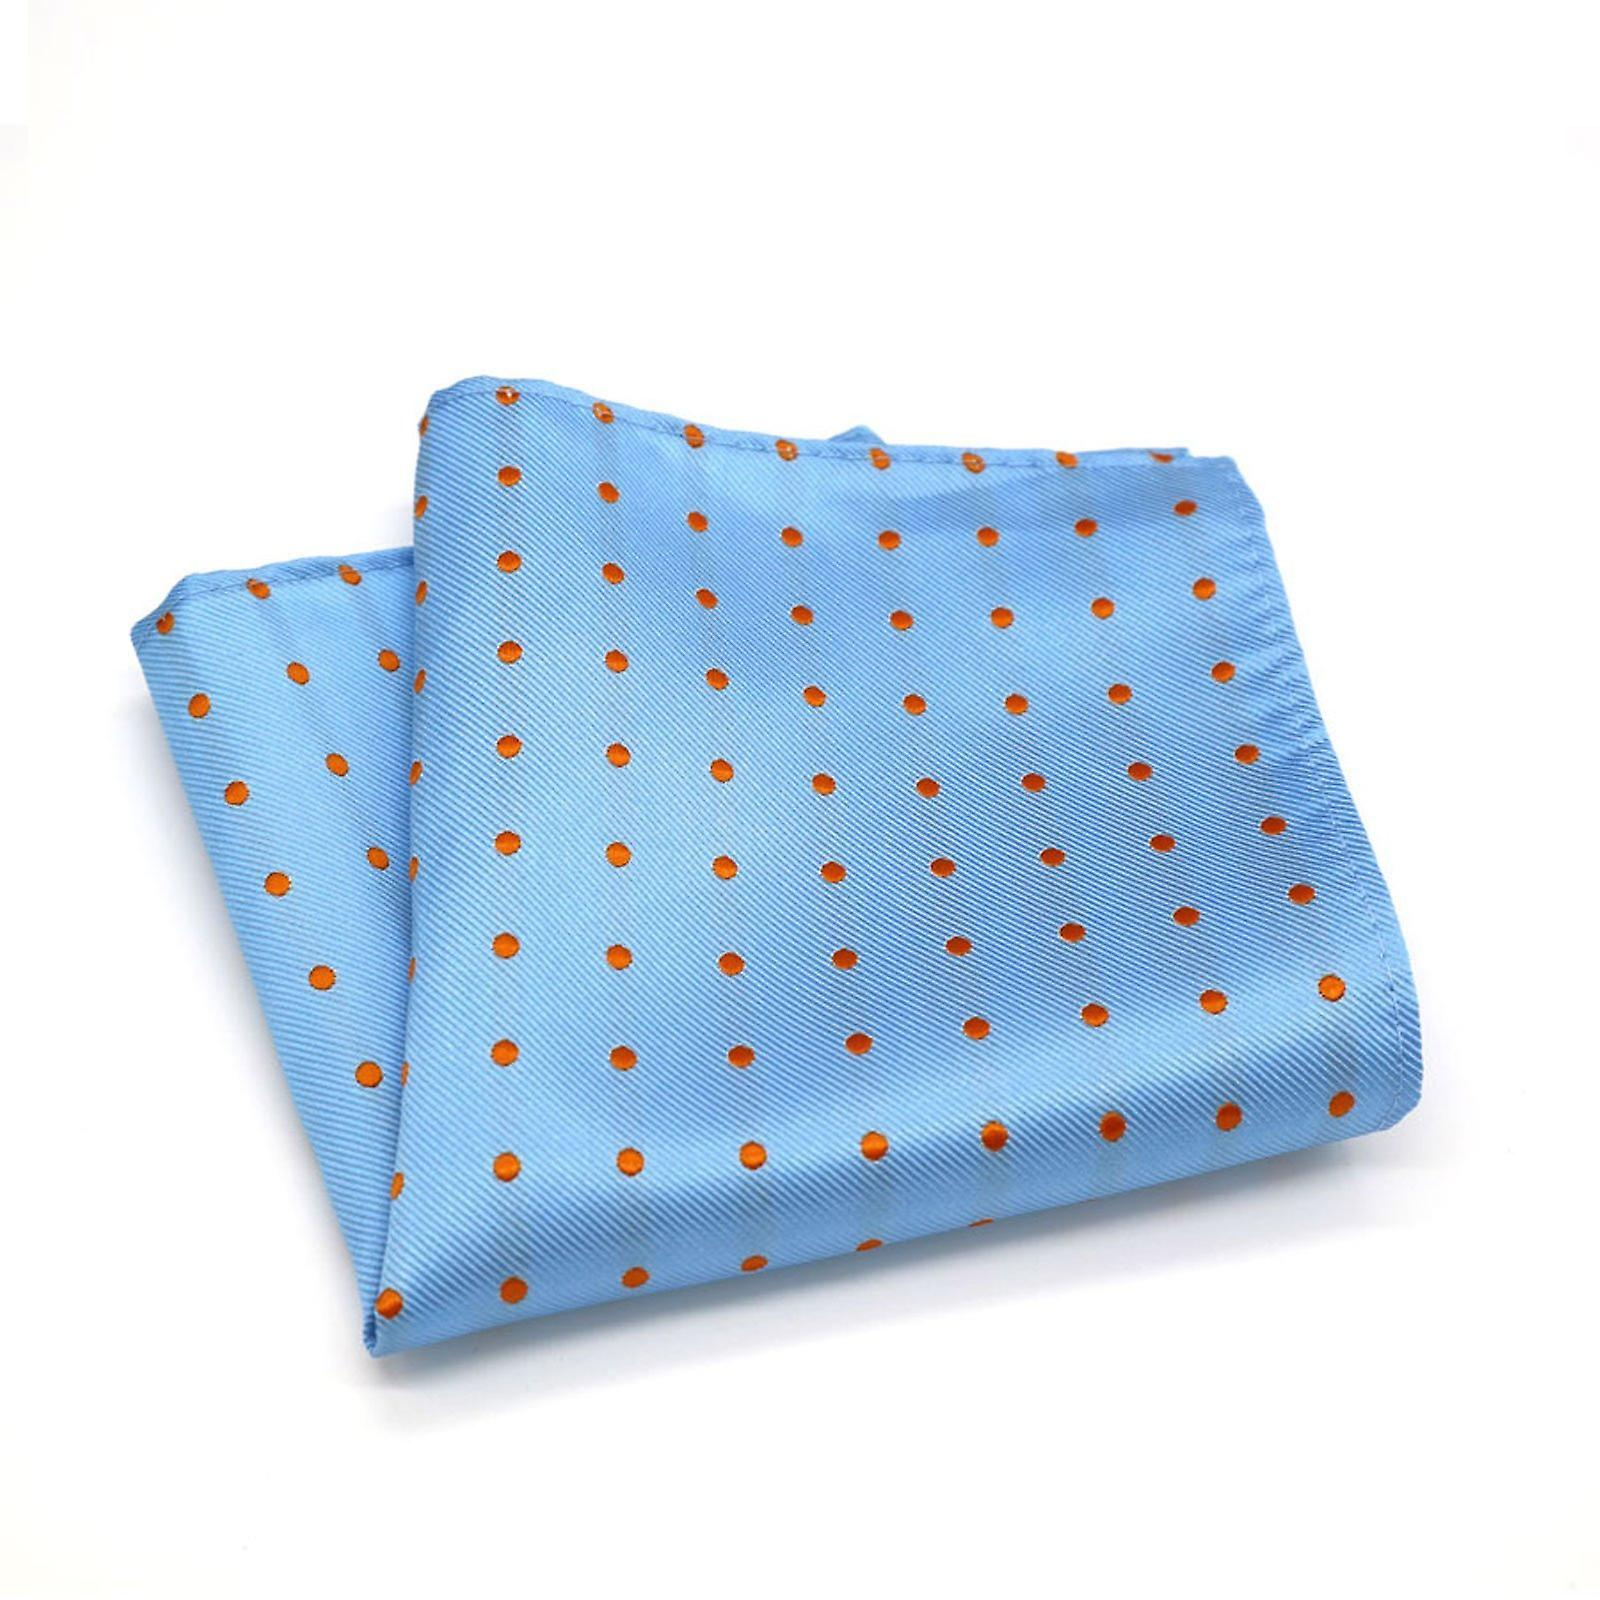 Baby blue & orange polka dot necktie & pocket square